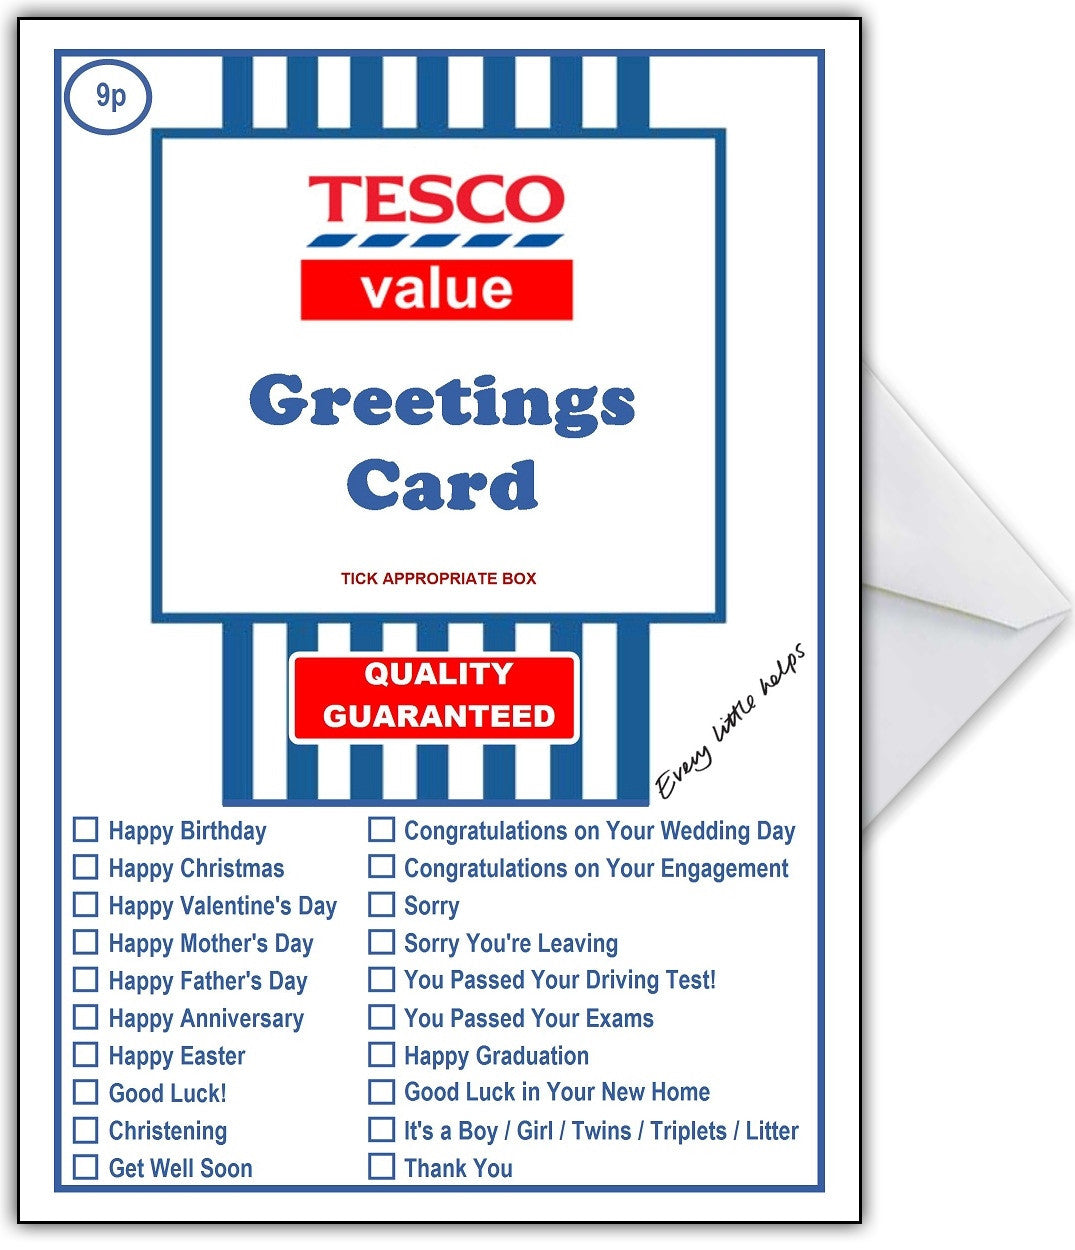 Supermarket Spoof Card Tesco Super Value For Any Occasion That